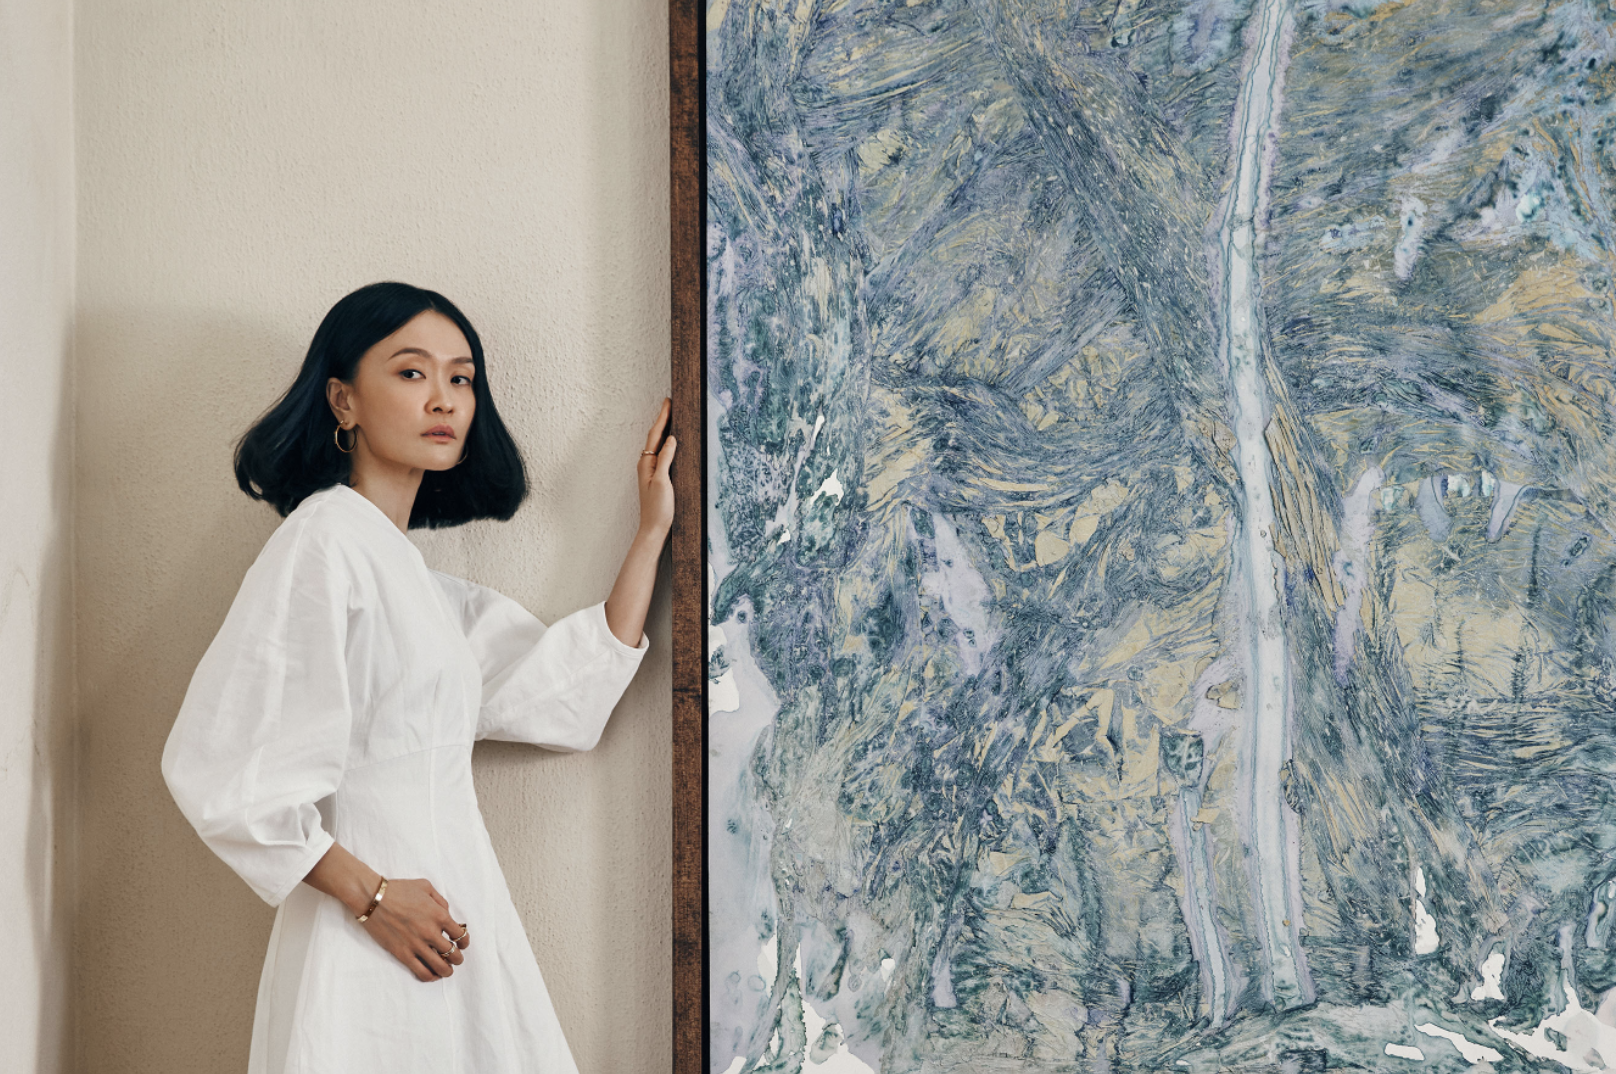 Singaporean Artist Dawn Ng Shares How Her Personal Journeys Inspire Her Works of Art